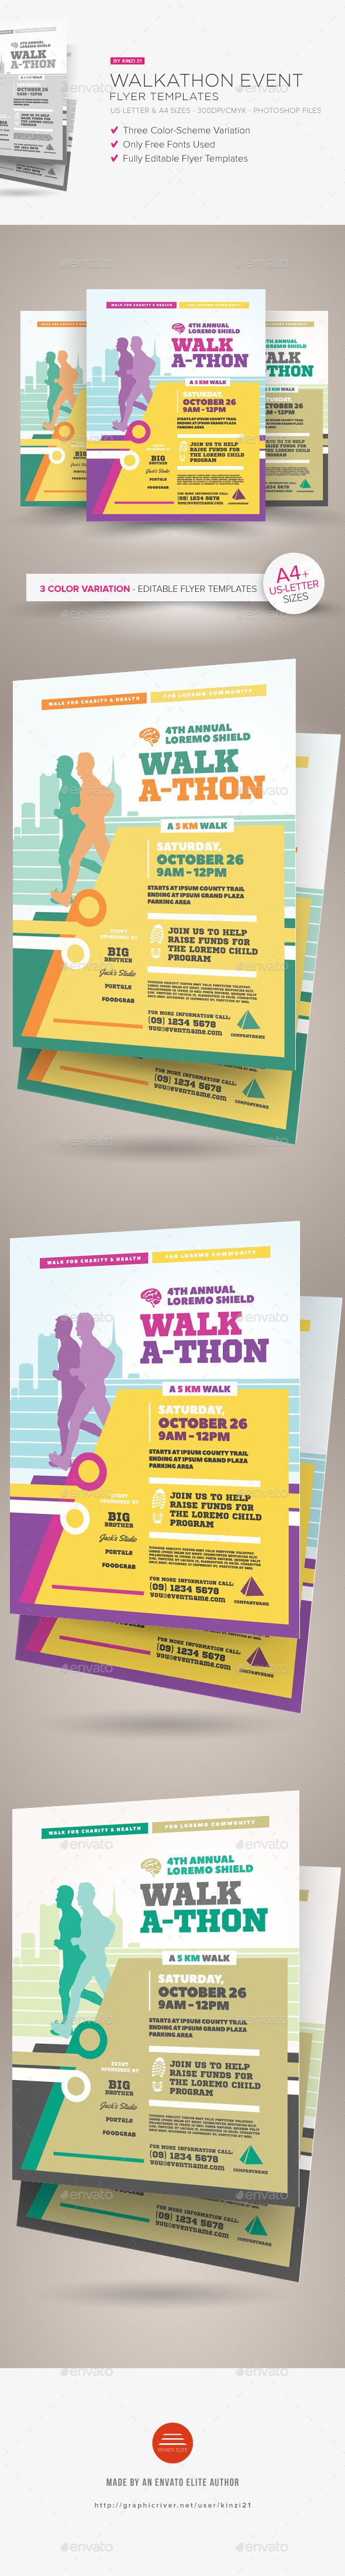 walkathon event flyer templates by kinzi21 walkathon event flyer templates a flyer template pack perfect for promoting walkathon walk a thon event